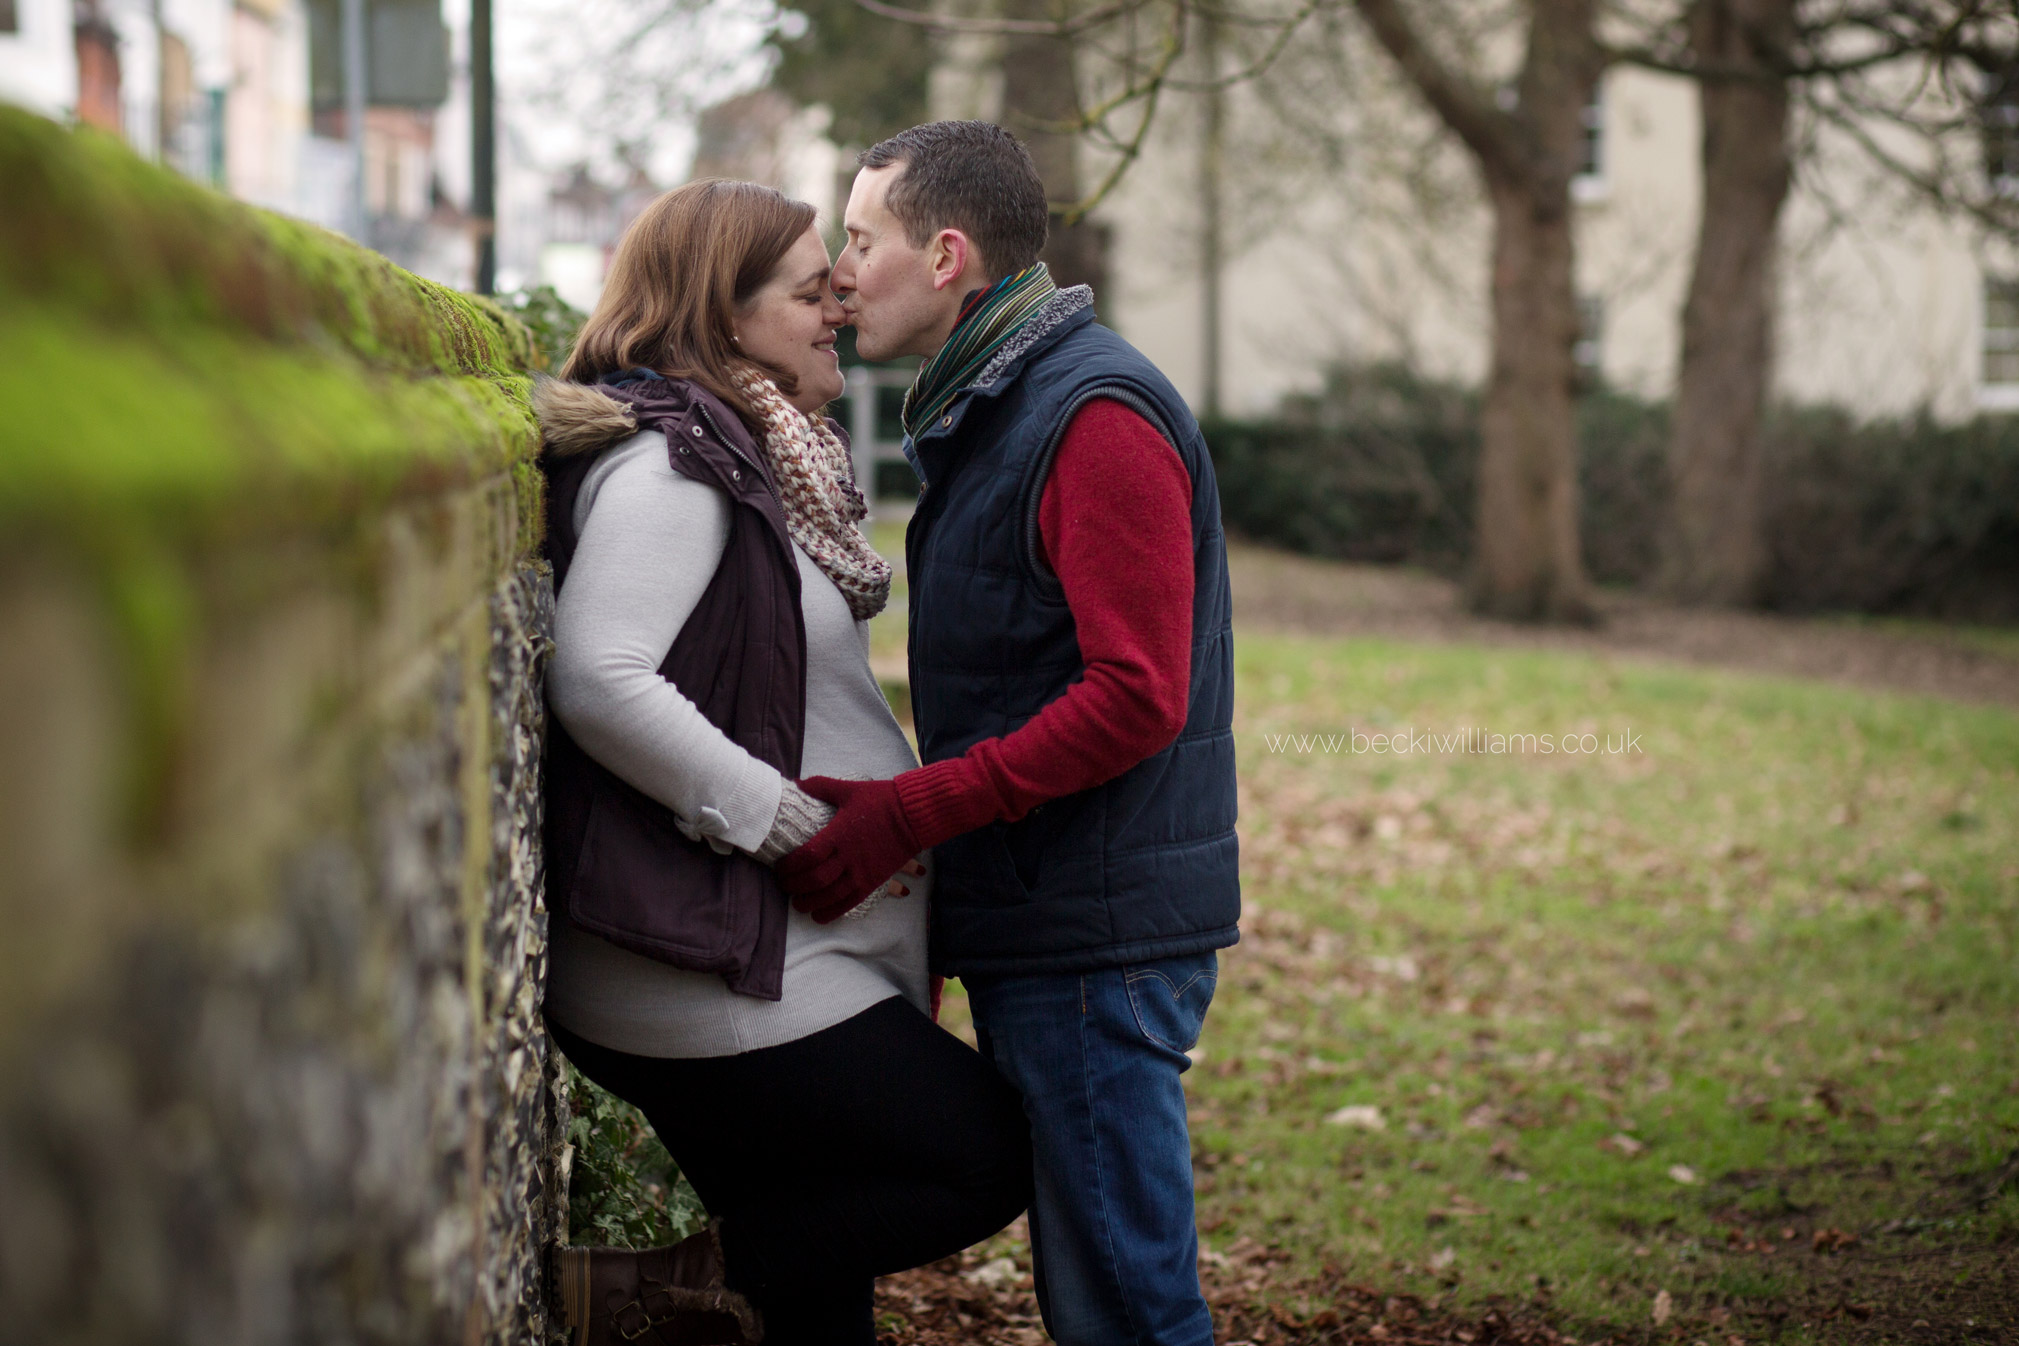 maternity-photo-shoot-hemel-hempstead-gadebridge-park-happy-couple.jpg